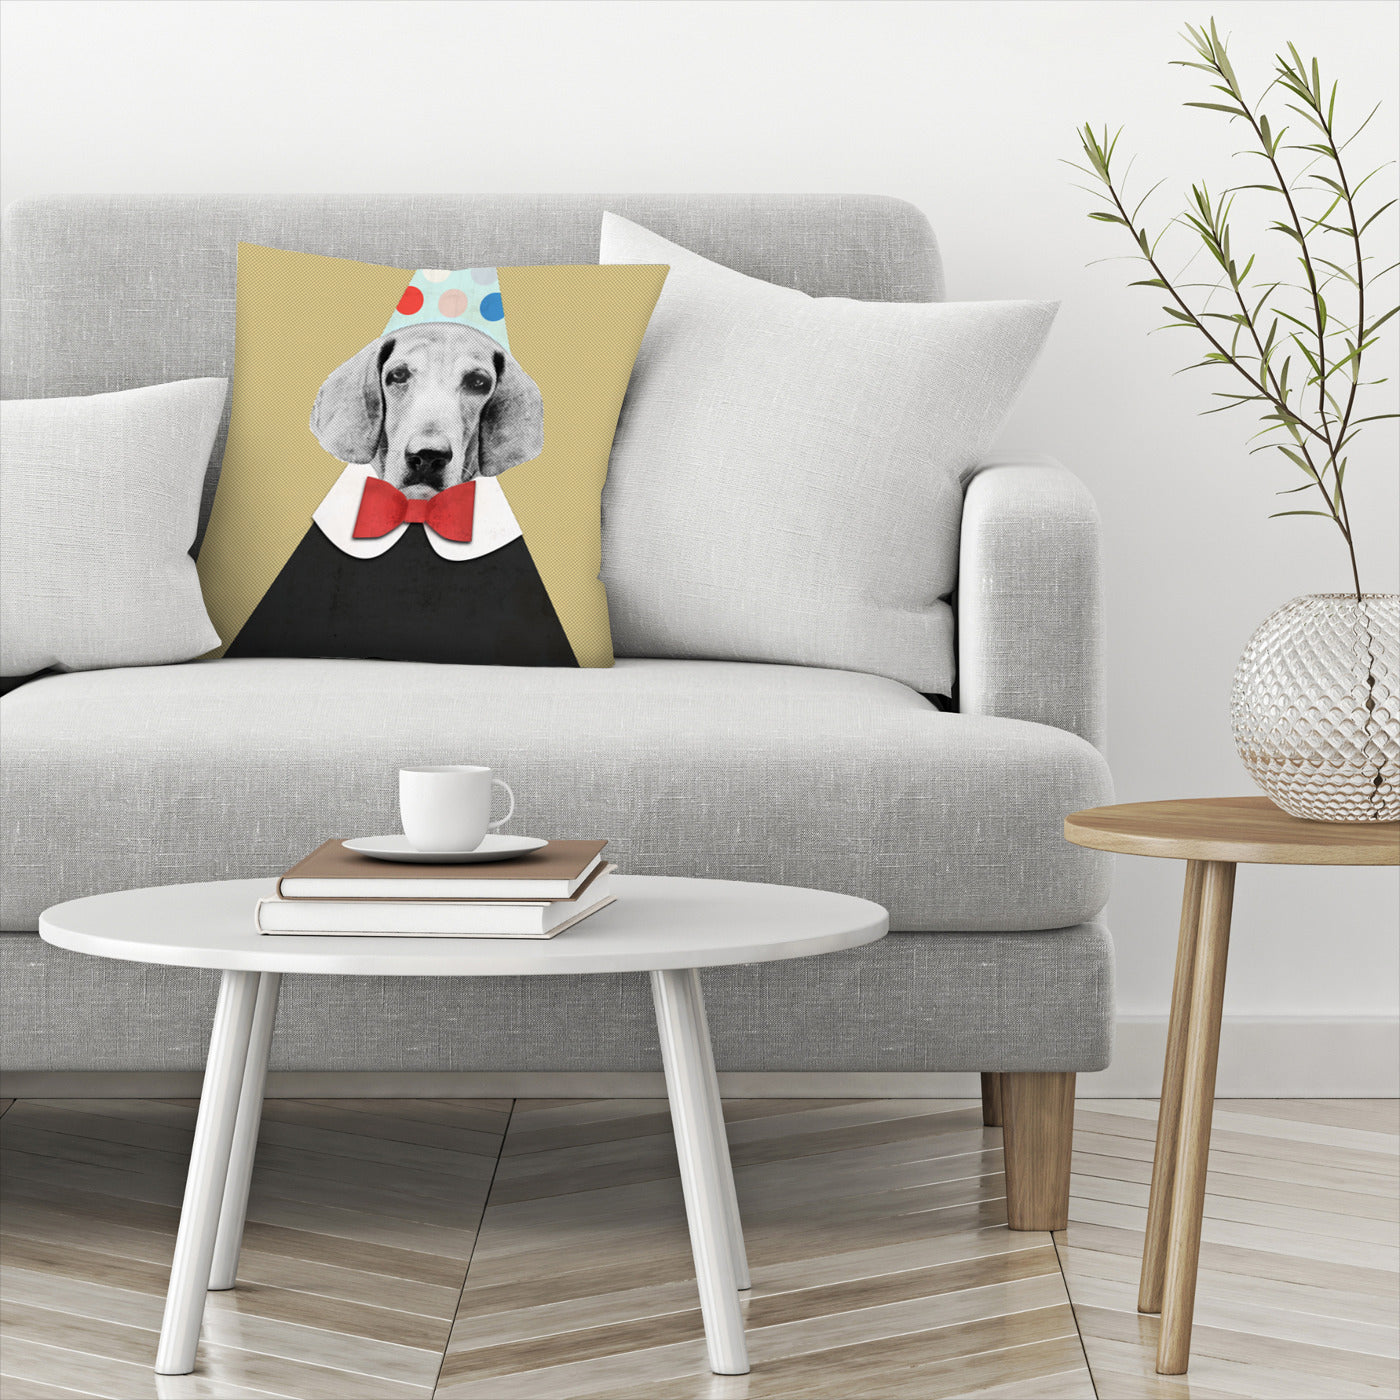 Doggy Pooh The Clown by Emanuela Carratoni Decorative Pillow - Decorative Pillow - Americanflat